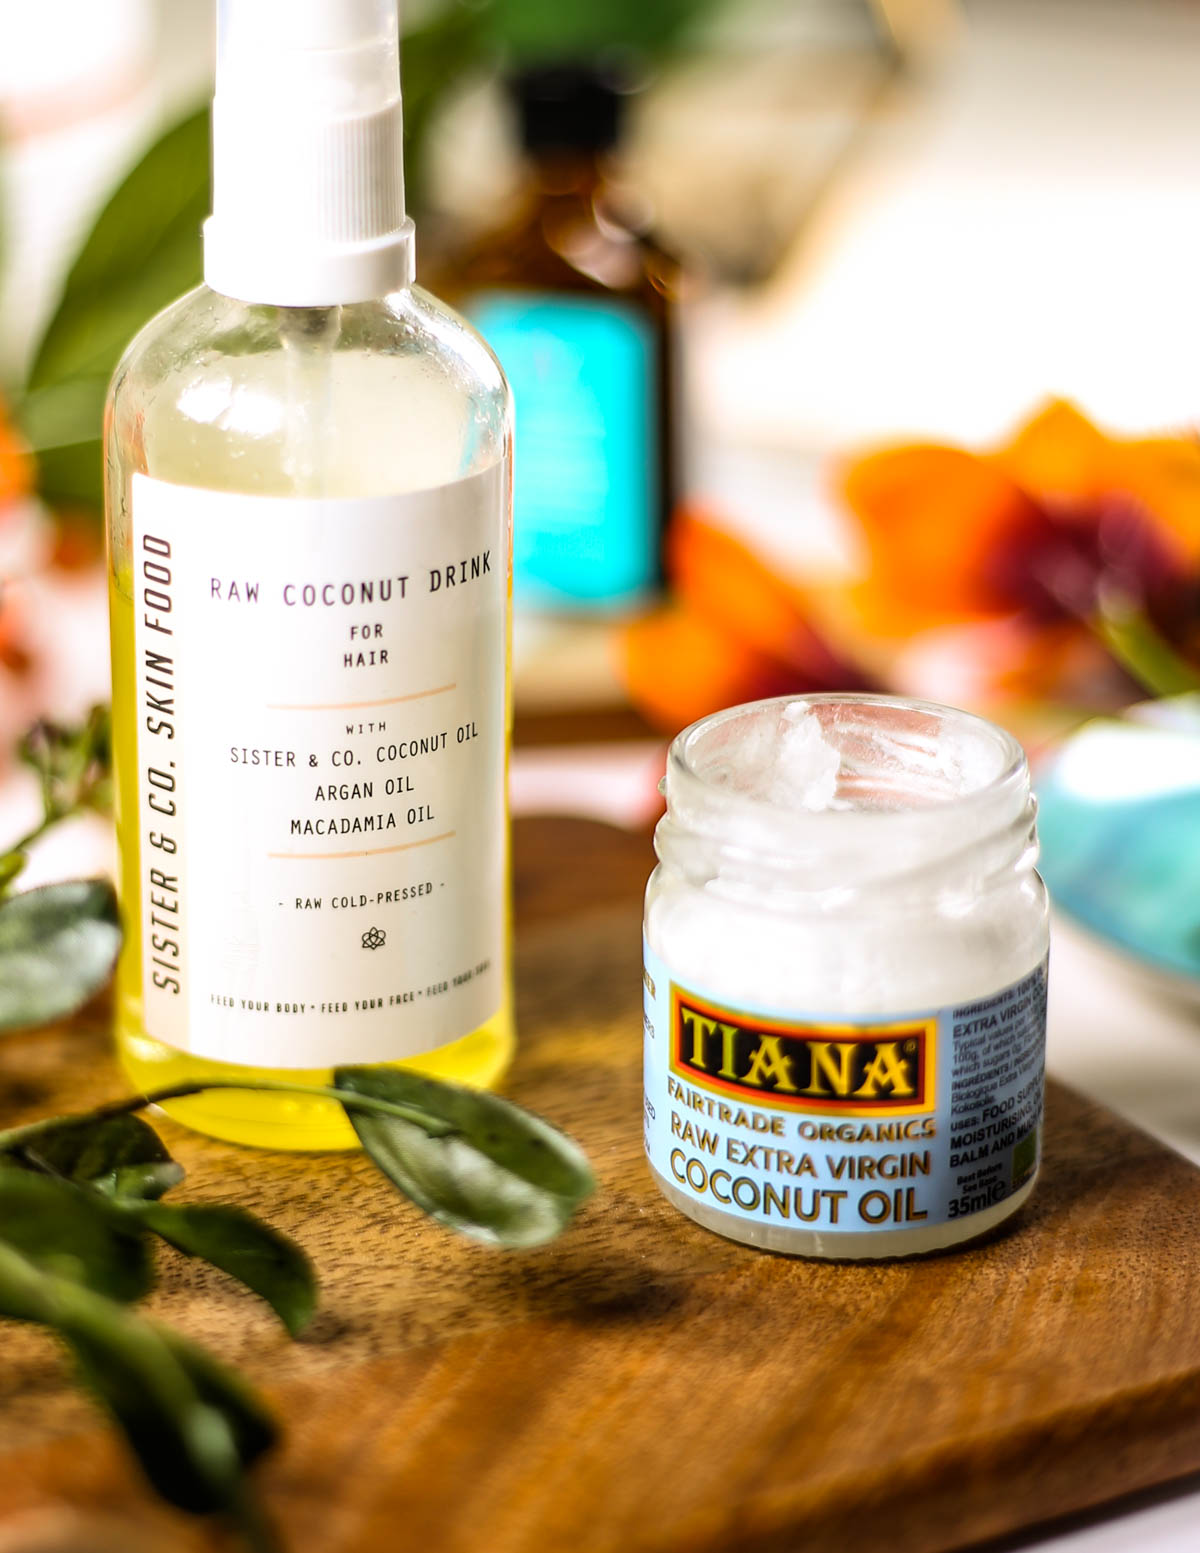 The Hair Products You Need For Healthy, Shiny & Frizz-Free Hair | Image featuring the Sister & Co Raw Coconut Drink for Hair and the Tiana Fairtrade Organics Raw Extra Virgin Coconut Oil